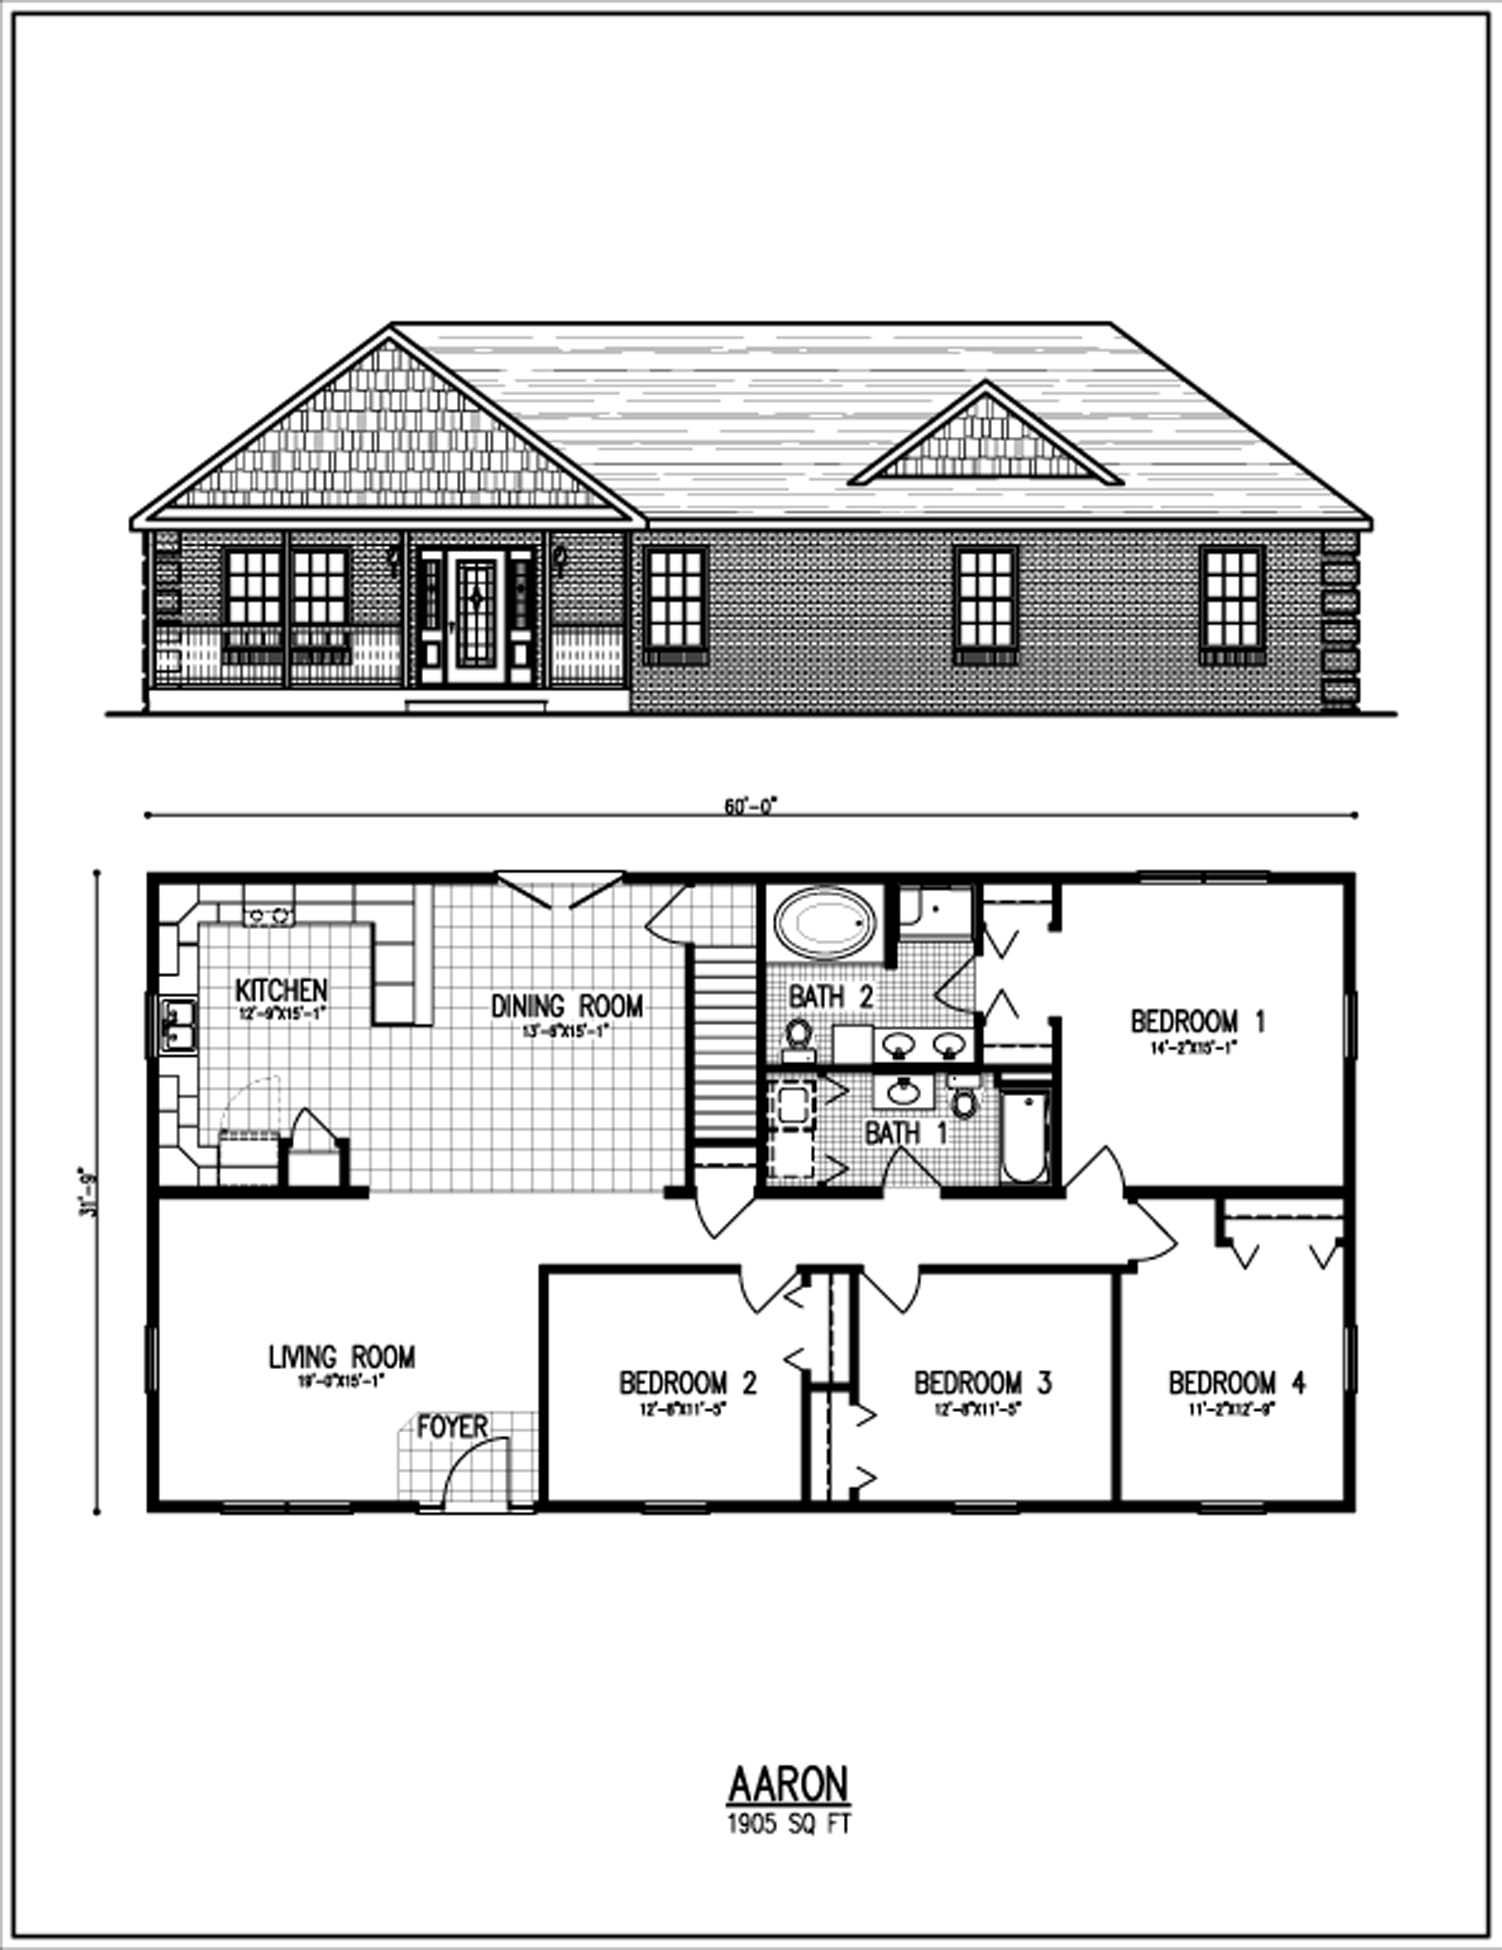 All american homes floorplan center staffordcape for Free ranch house plans